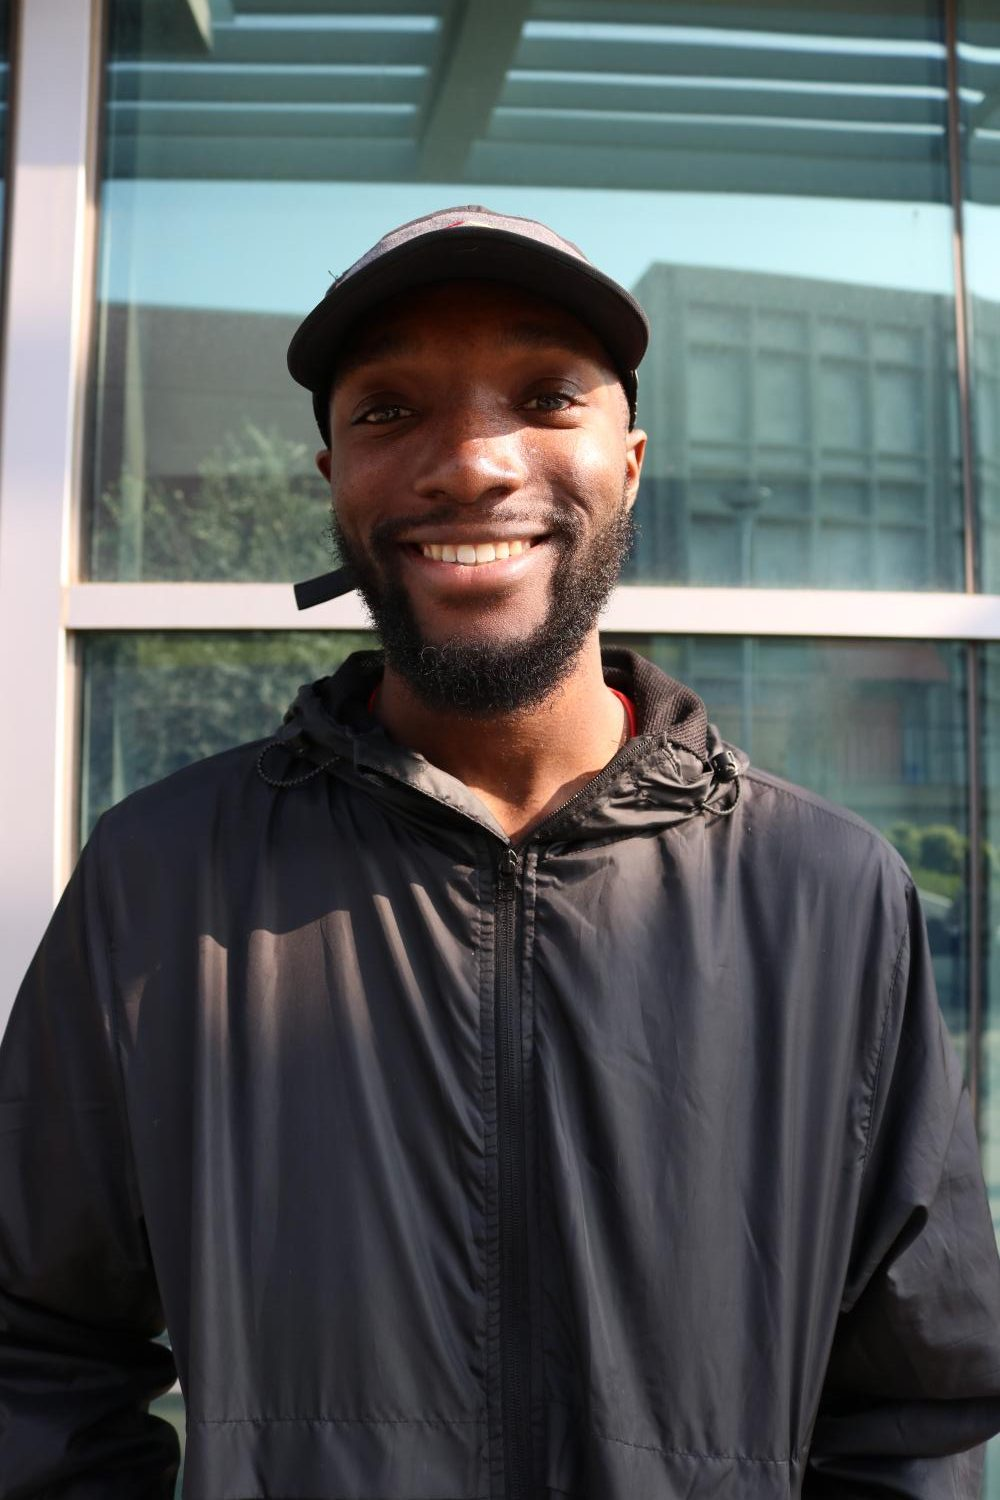 """Dr. Martin Luther King because he inspired me to be great, love all people, and too see the light even when things are difficult."" Latrell James 